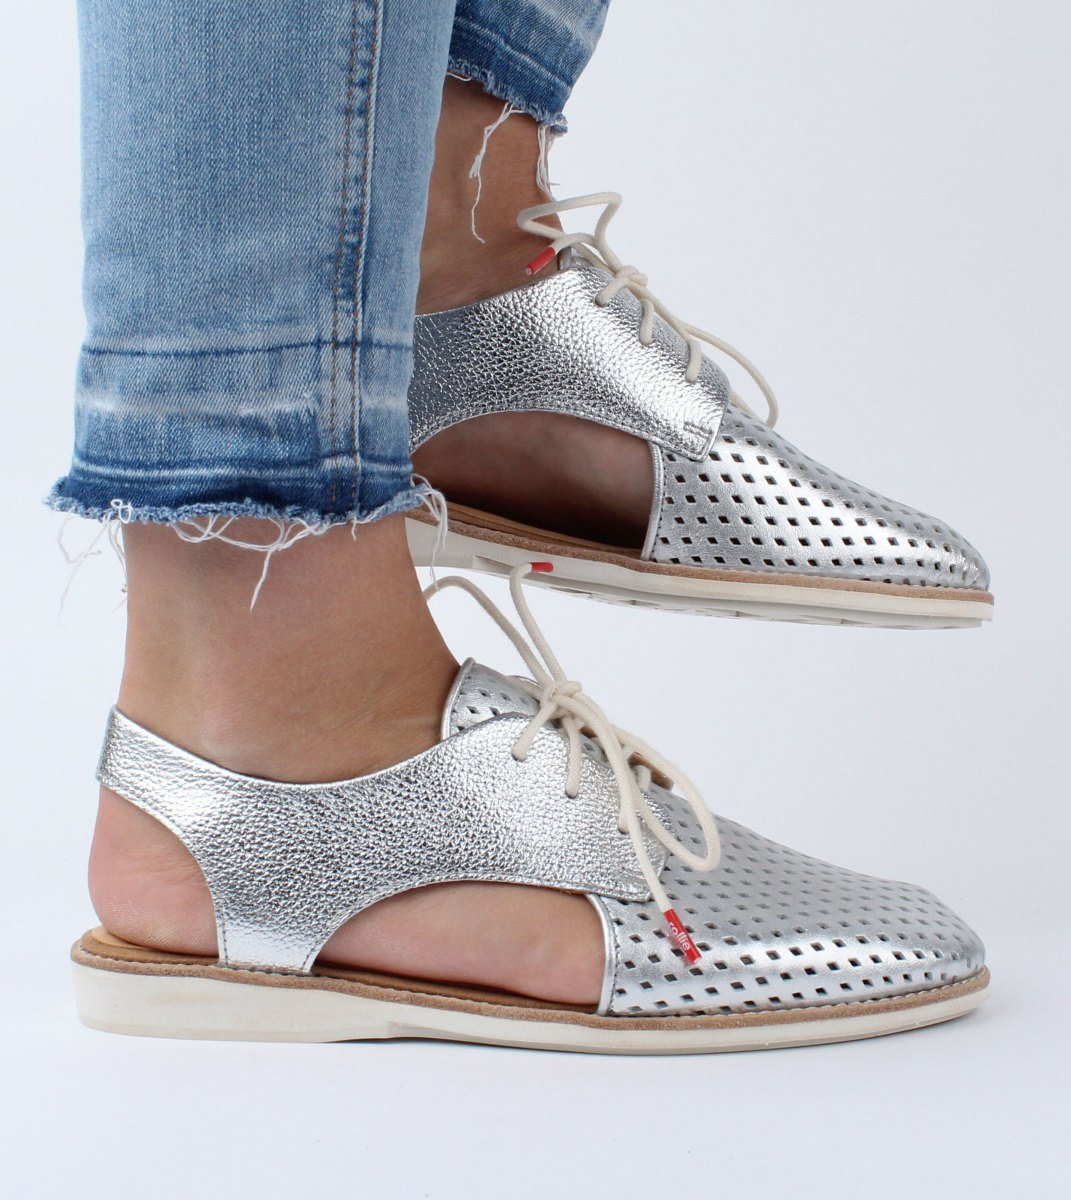 Rollie-Derby_Slingback_Punch-Silver-M3